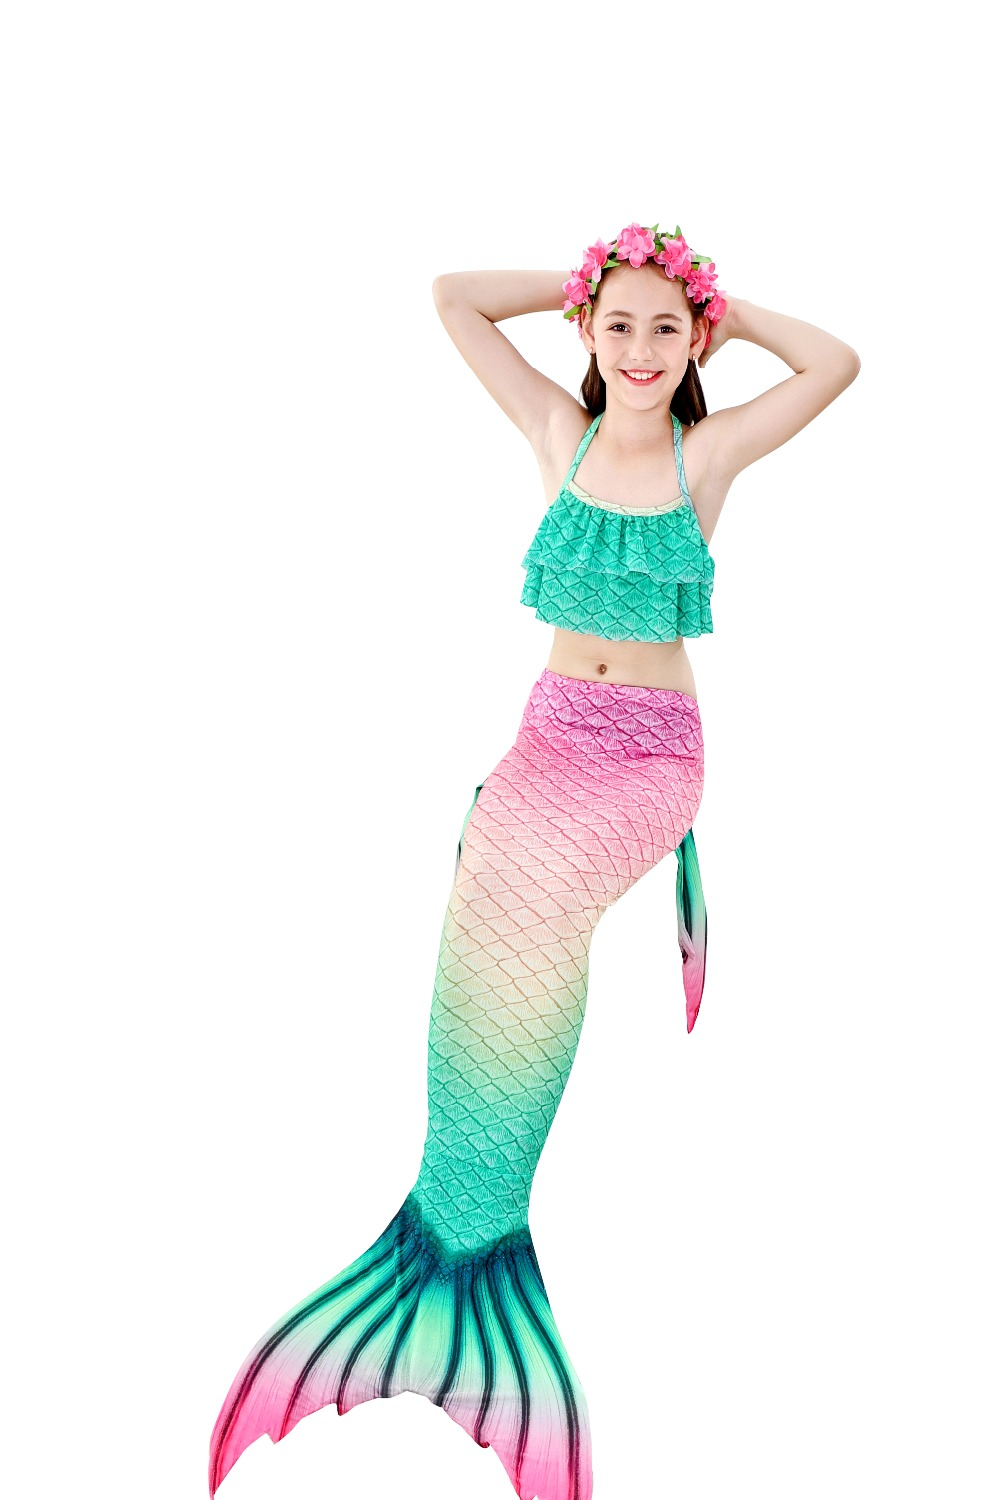 He6ae7b86ddf94826bf35cec40c4ae0d59 - 4PCS/Set HOT Kids Girls Mermaid Tails with Fin Swimsuit Bikini Bathing Suit Dress for Girls With Flipper Monofin For Swim